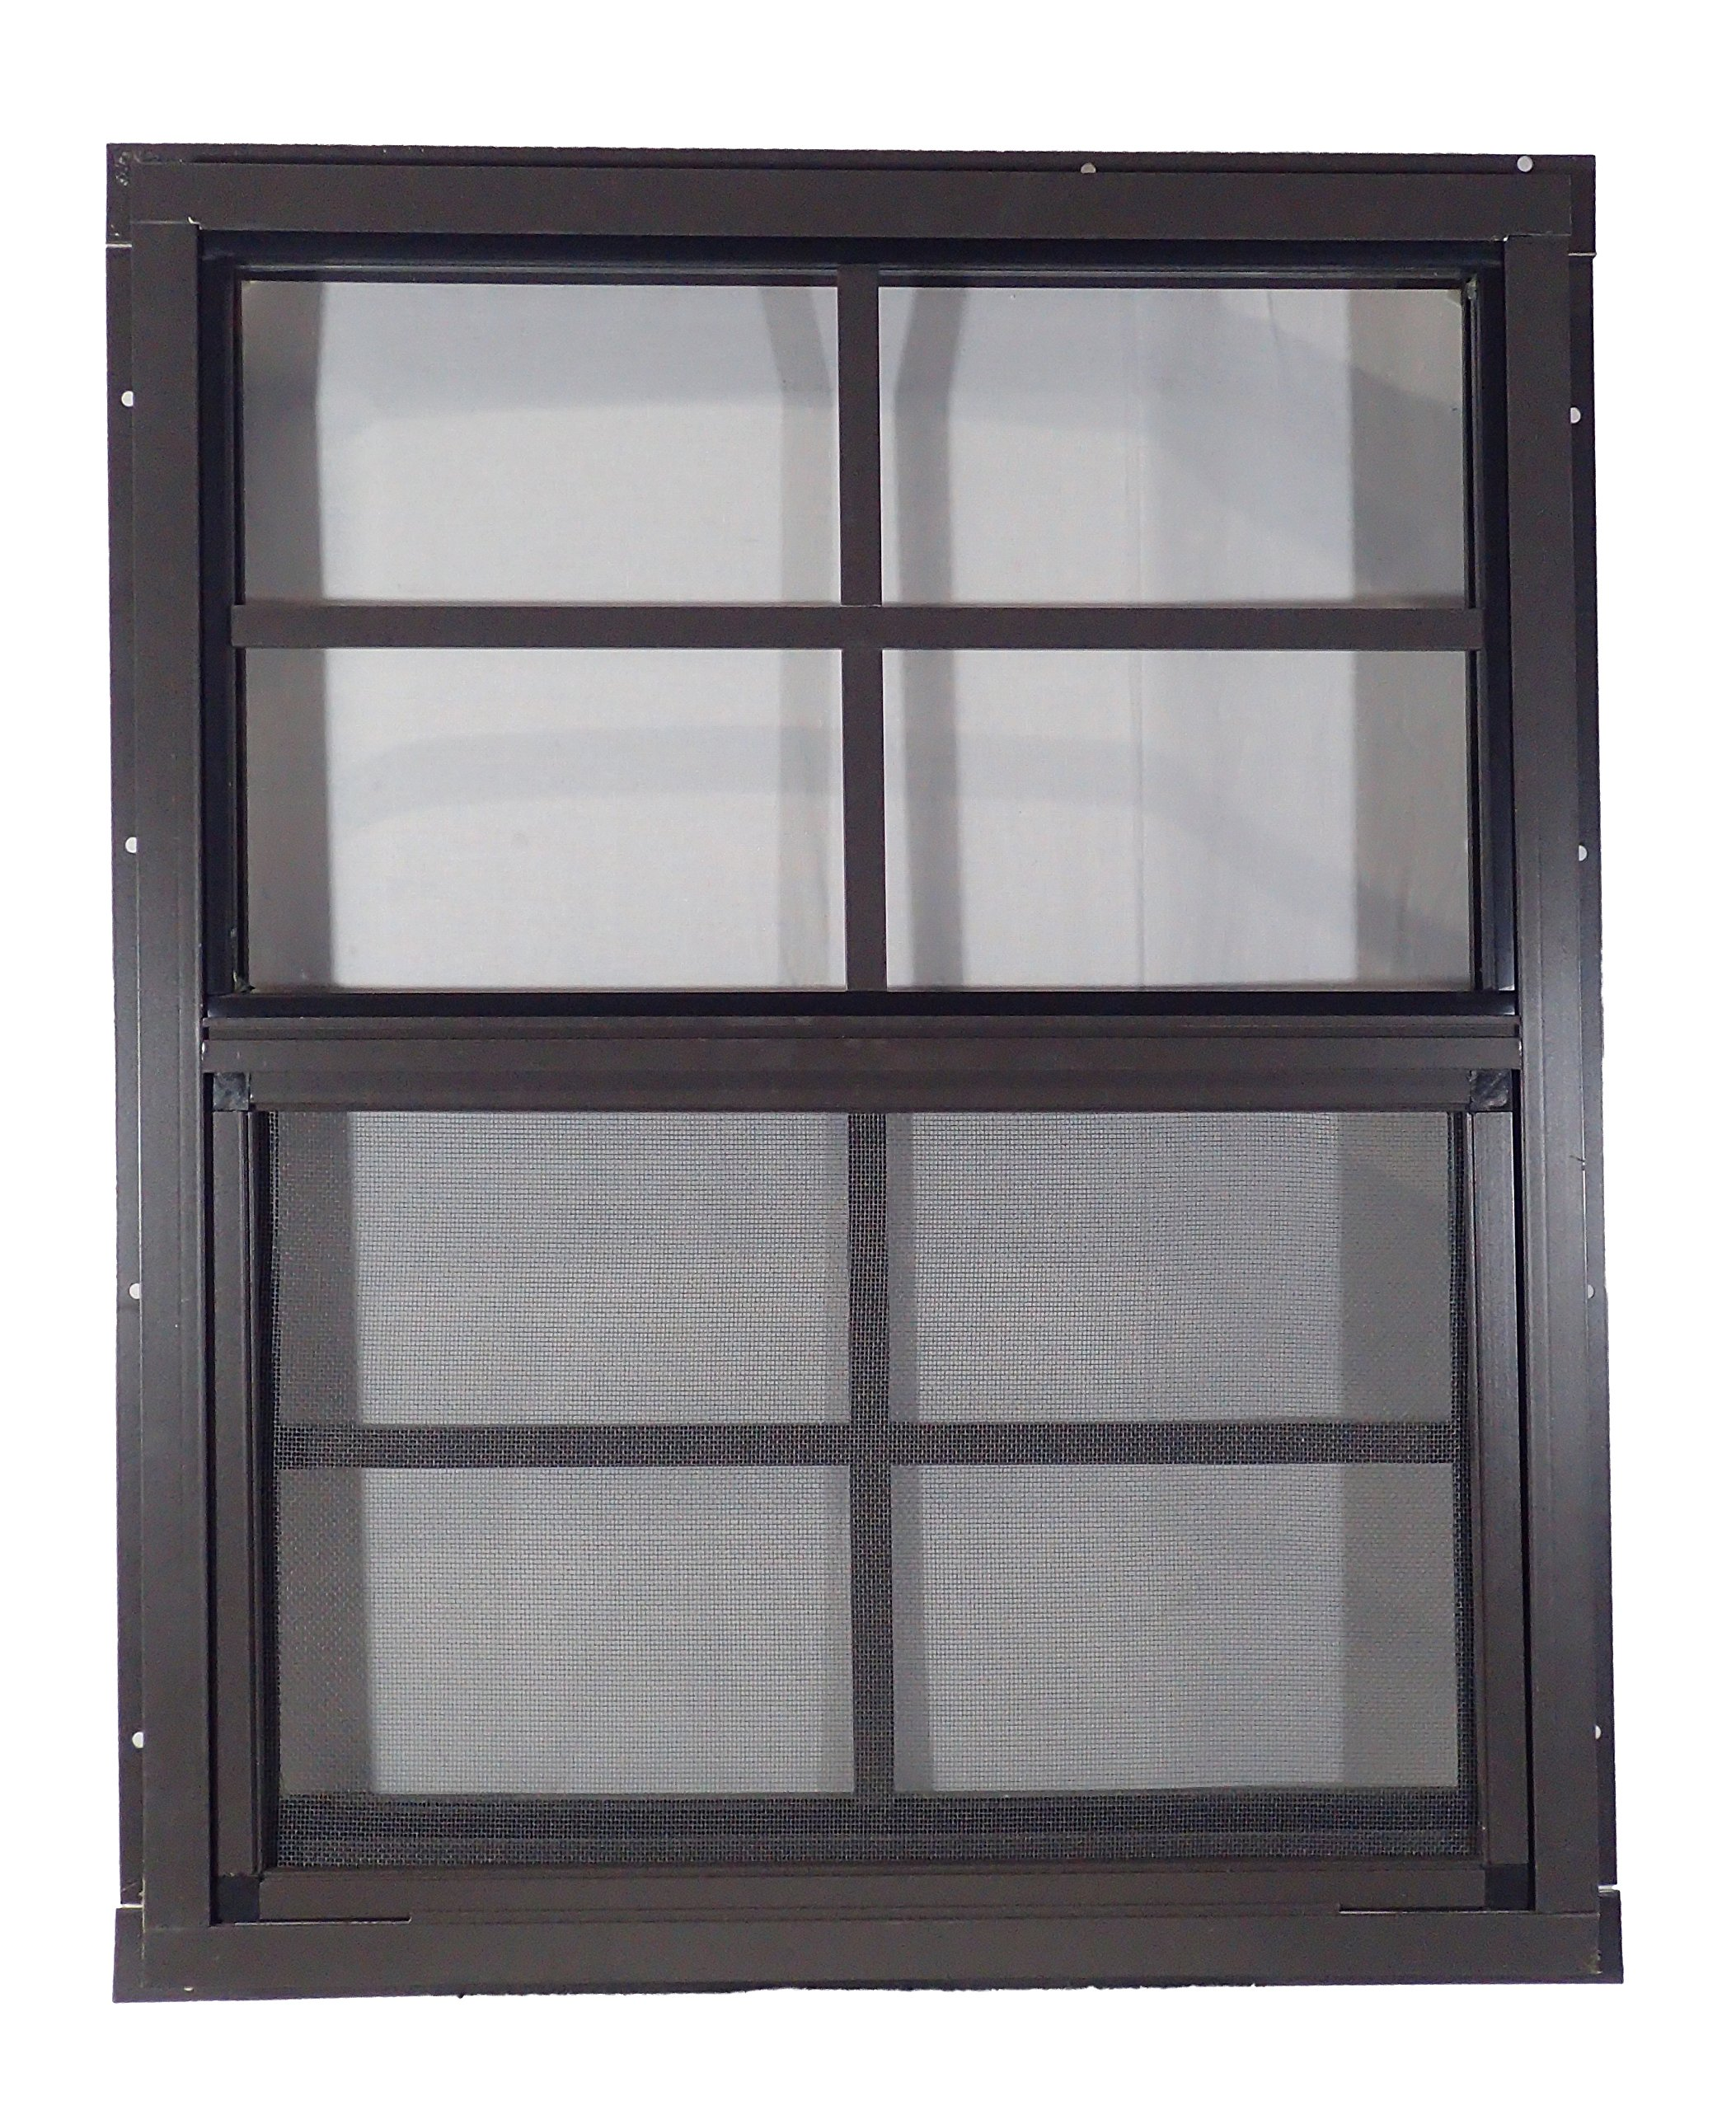 Shed Windows 18'' W x 23'' H - J-Lap - Playhouse Windows (Brown)